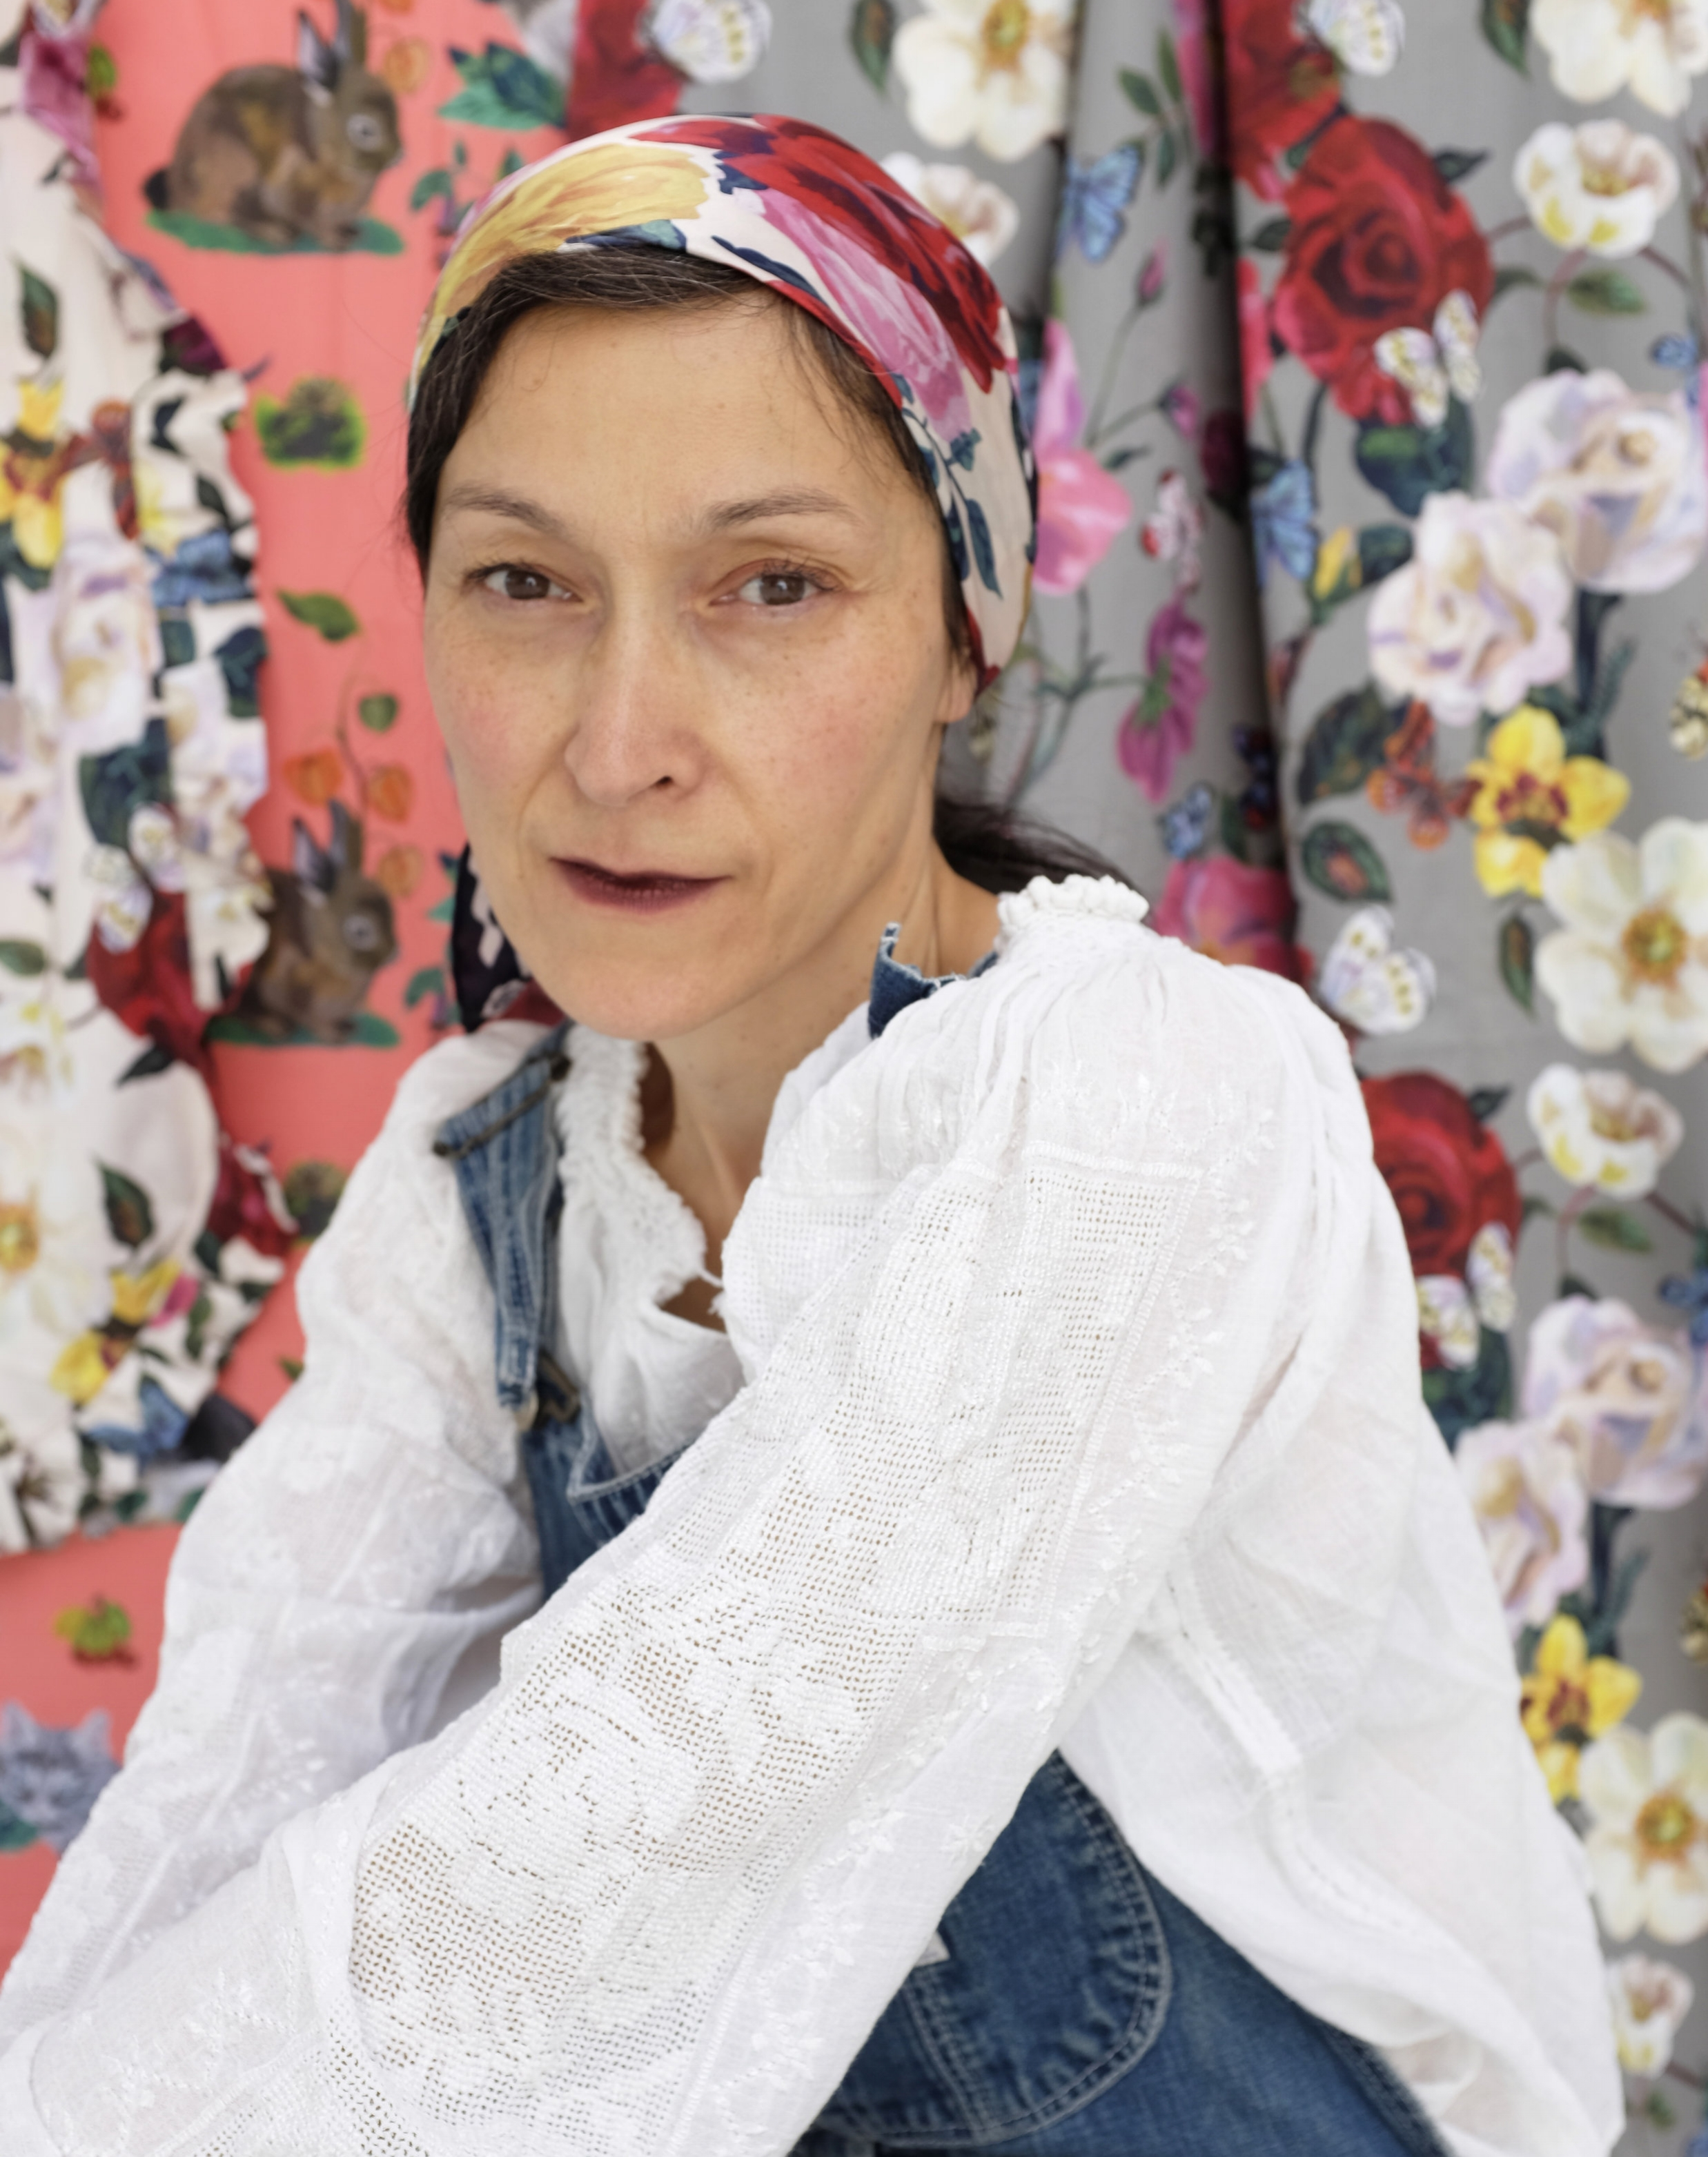 Nathalie Lete - Natalie is a prolific artist of German and Chinese descent living and making art in Paris. Nathalie's lyrical and painterly style has captivated art lovers and taste makers for years and her range includes clothing, homewares, gift, decor, and ceramic goods. Her cotton fabric collections with Conservatory are filled with wonder and delight.See more at nathalie-lete.com